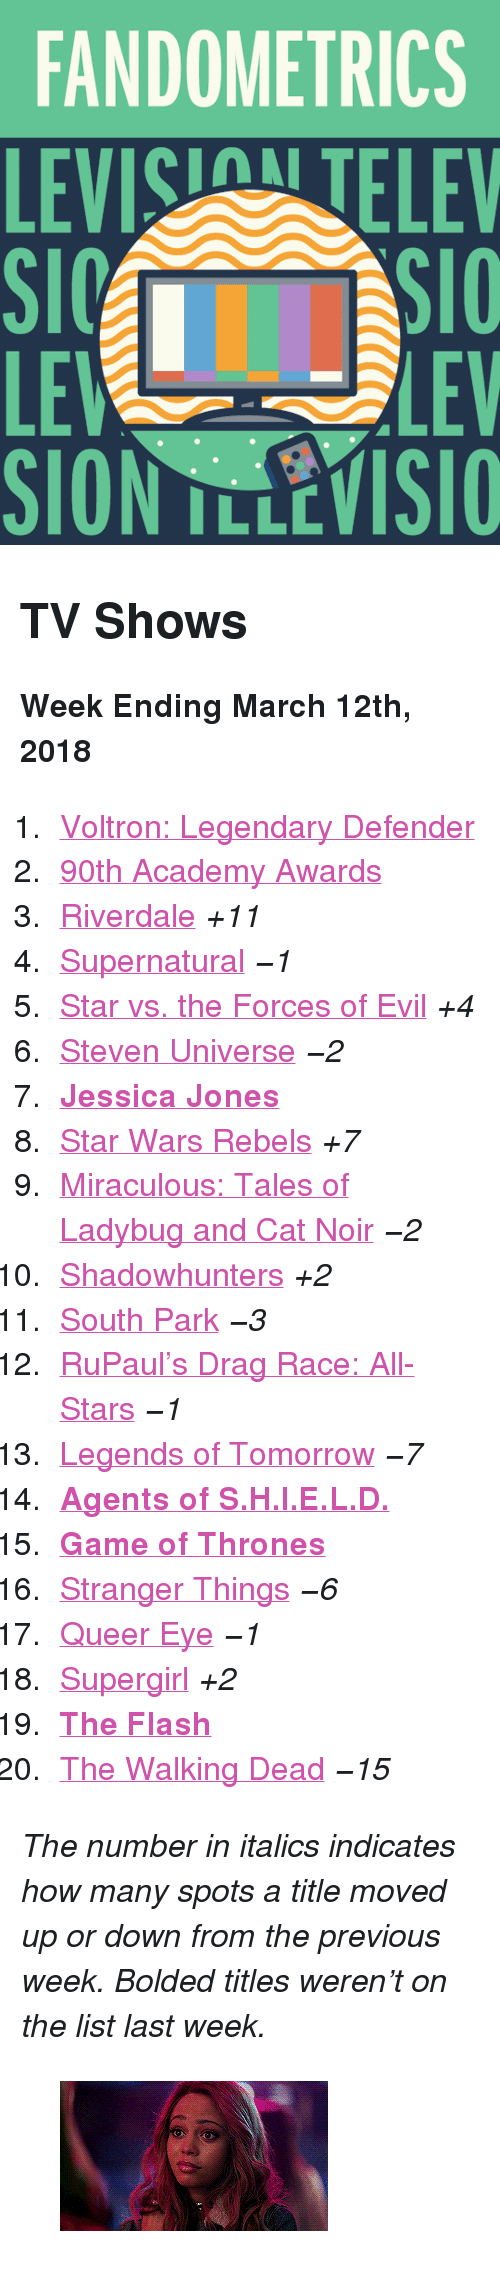 "Academy Awards: FANDOMETRICS  LEVIS TELEV  LE  LEV <h2>TV Shows</h2><p><b>Week Ending March 12th, 2018</b></p><ol><li><a href=""http://www.tumblr.com/search/voltron"">Voltron: Legendary Defender</a></li>  <li><a href=""http://www.tumblr.com/search/oscars"">90th Academy Awards</a></li>  <li><a href=""http://www.tumblr.com/search/riverdale"">Riverdale</a> <i>+11</i></li>  <li><a href=""http://www.tumblr.com/search/supernatural"">Supernatural</a> <i><i>−1</i></i></li>  <li><a href=""http://www.tumblr.com/search/star%20vs%20the%20forces%20of%20evil"">Star vs. the Forces of Evil</a> <i>+4</i></li>  <li><a href=""http://www.tumblr.com/search/steven%20universe"">Steven Universe</a> <i><i>−2</i></i></li>  <li><a href=""http://www.tumblr.com/search/jessica%20jones""><b>Jessica Jones</b></a></li>  <li><a href=""http://www.tumblr.com/search/star%20wars%20rebels"">Star Wars Rebels</a> <i>+7</i></li>  <li><a href=""http://www.tumblr.com/search/miraculous%20ladybug"">Miraculous: Tales of Ladybug and Cat Noir</a> <i><i>−2</i></i></li>  <li><a href=""http://www.tumblr.com/search/shadowhunters"">Shadowhunters</a> <i>+2</i></li>  <li><a href=""http://www.tumblr.com/search/south%20park"">South Park</a> <i><i>−3</i></i></li>  <li><a href=""http://www.tumblr.com/search/rupaul's%20drag%20race"">RuPaul&rsquo;s Drag Race: All-Stars</a> <i><i>−1</i></i></li>  <li><a href=""http://www.tumblr.com/search/legends%20of%20tomorrow"">Legends of Tomorrow</a> <i><i>−7</i></i></li>  <li><b><a href=""http://www.tumblr.com/search/agents%20of%20shield"">Agents of S.H.I.E.L.D.</a> </b></li>  <li><a href=""http://www.tumblr.com/search/game%20of%20thrones""><b>Game of Thrones</b></a></li>  <li><a href=""http://www.tumblr.com/search/stranger%20things"">Stranger Things</a> <i><i>−6</i></i></li>  <li><a href=""http://www.tumblr.com/search/queer%20eye"">Queer Eye</a> <i><i>−1</i></i></li>  <li><a href=""http://www.tumblr.com/search/supergirl"">Supergirl</a> <i>+2</i></li>  <li><a href=""http://www.tumblr.com/search/the%20flash""><b>The Flash</b></a></li>  <li><a href=""http://www.tumblr.com/search/the%20walking%20dead"">The Walking Dead</a> <i><i>−15</i></i></li></ol><p><i>The number in italics indicates how many spots a title moved up or down from the previous week. Bolded titles weren't on the list last week.</i></p><figure data-orig-width=""500"" data-orig-height=""206"" data-tumblr-attribution=""fyeahchoni:TBY3OCj1K6aSRo8uL1Bmcw:ZAQQja2Vu7qF1"" class=""tmblr-full""><img src=""https://78.media.tumblr.com/ecc77cb6485fda6e468fbb447e1f5f04/tumblr_p5a5rsu4rY1x8bb8vo1_400.gif"" alt=""image"" data-orig-width=""500"" data-orig-height=""206""/></figure>"